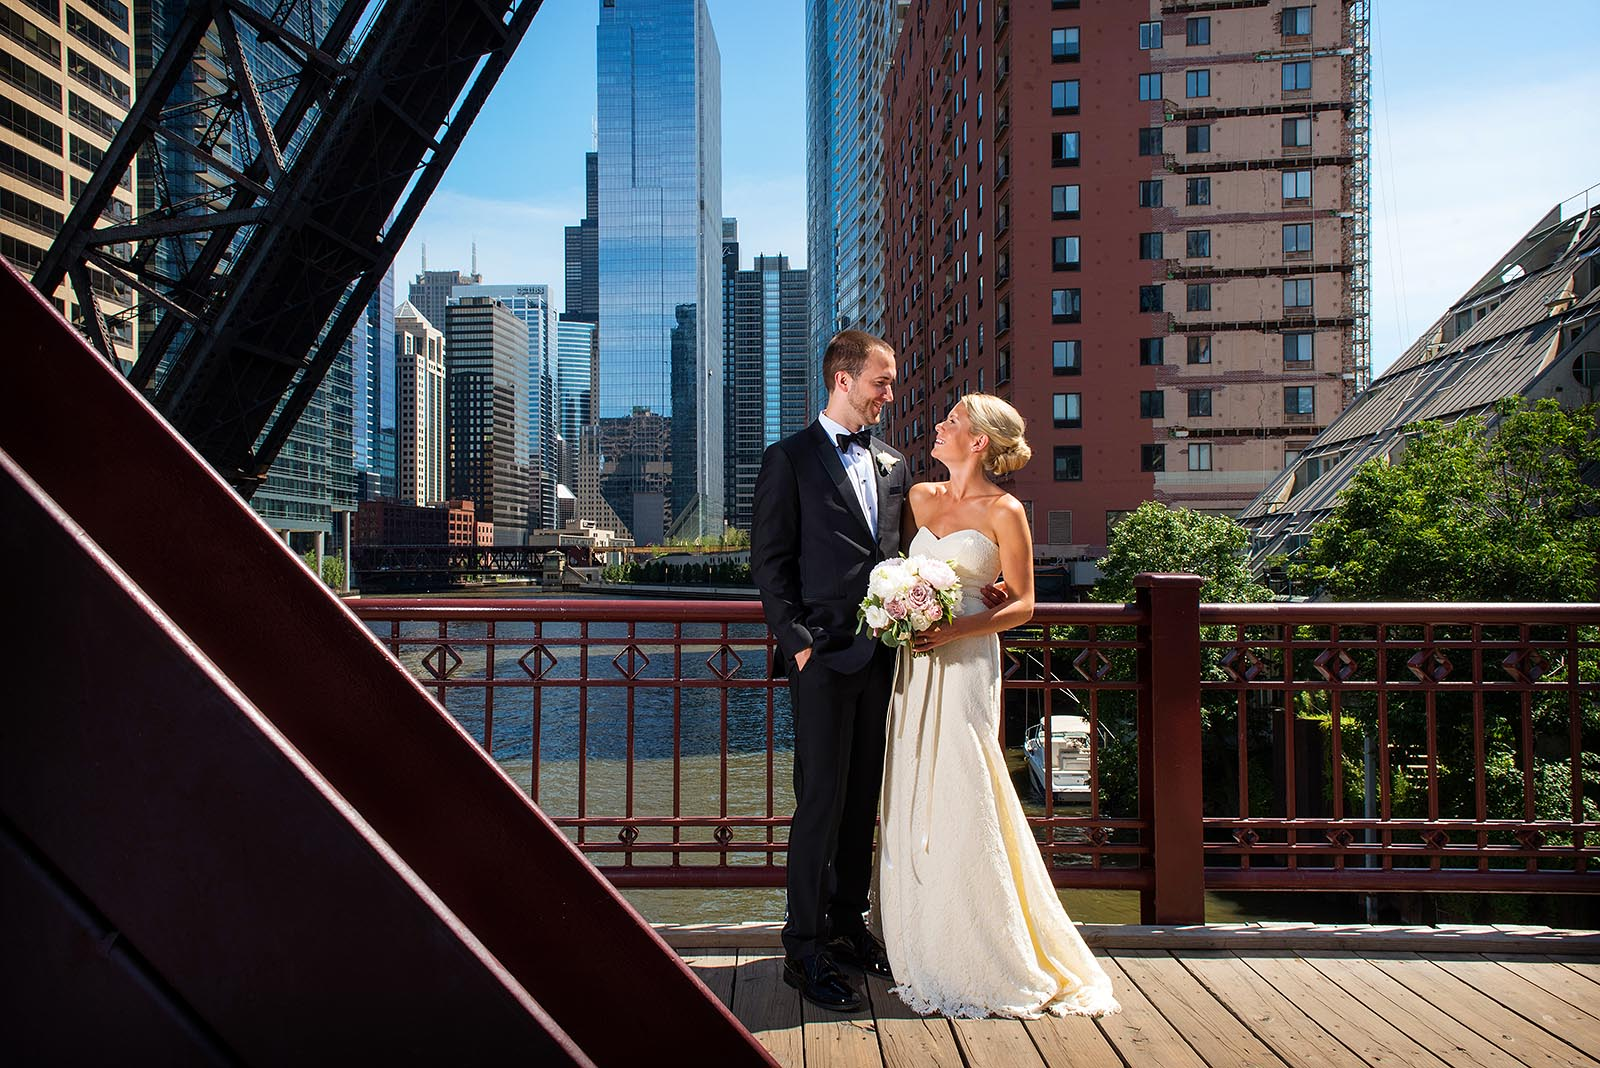 Kinzie St Bridge Wedding Photo